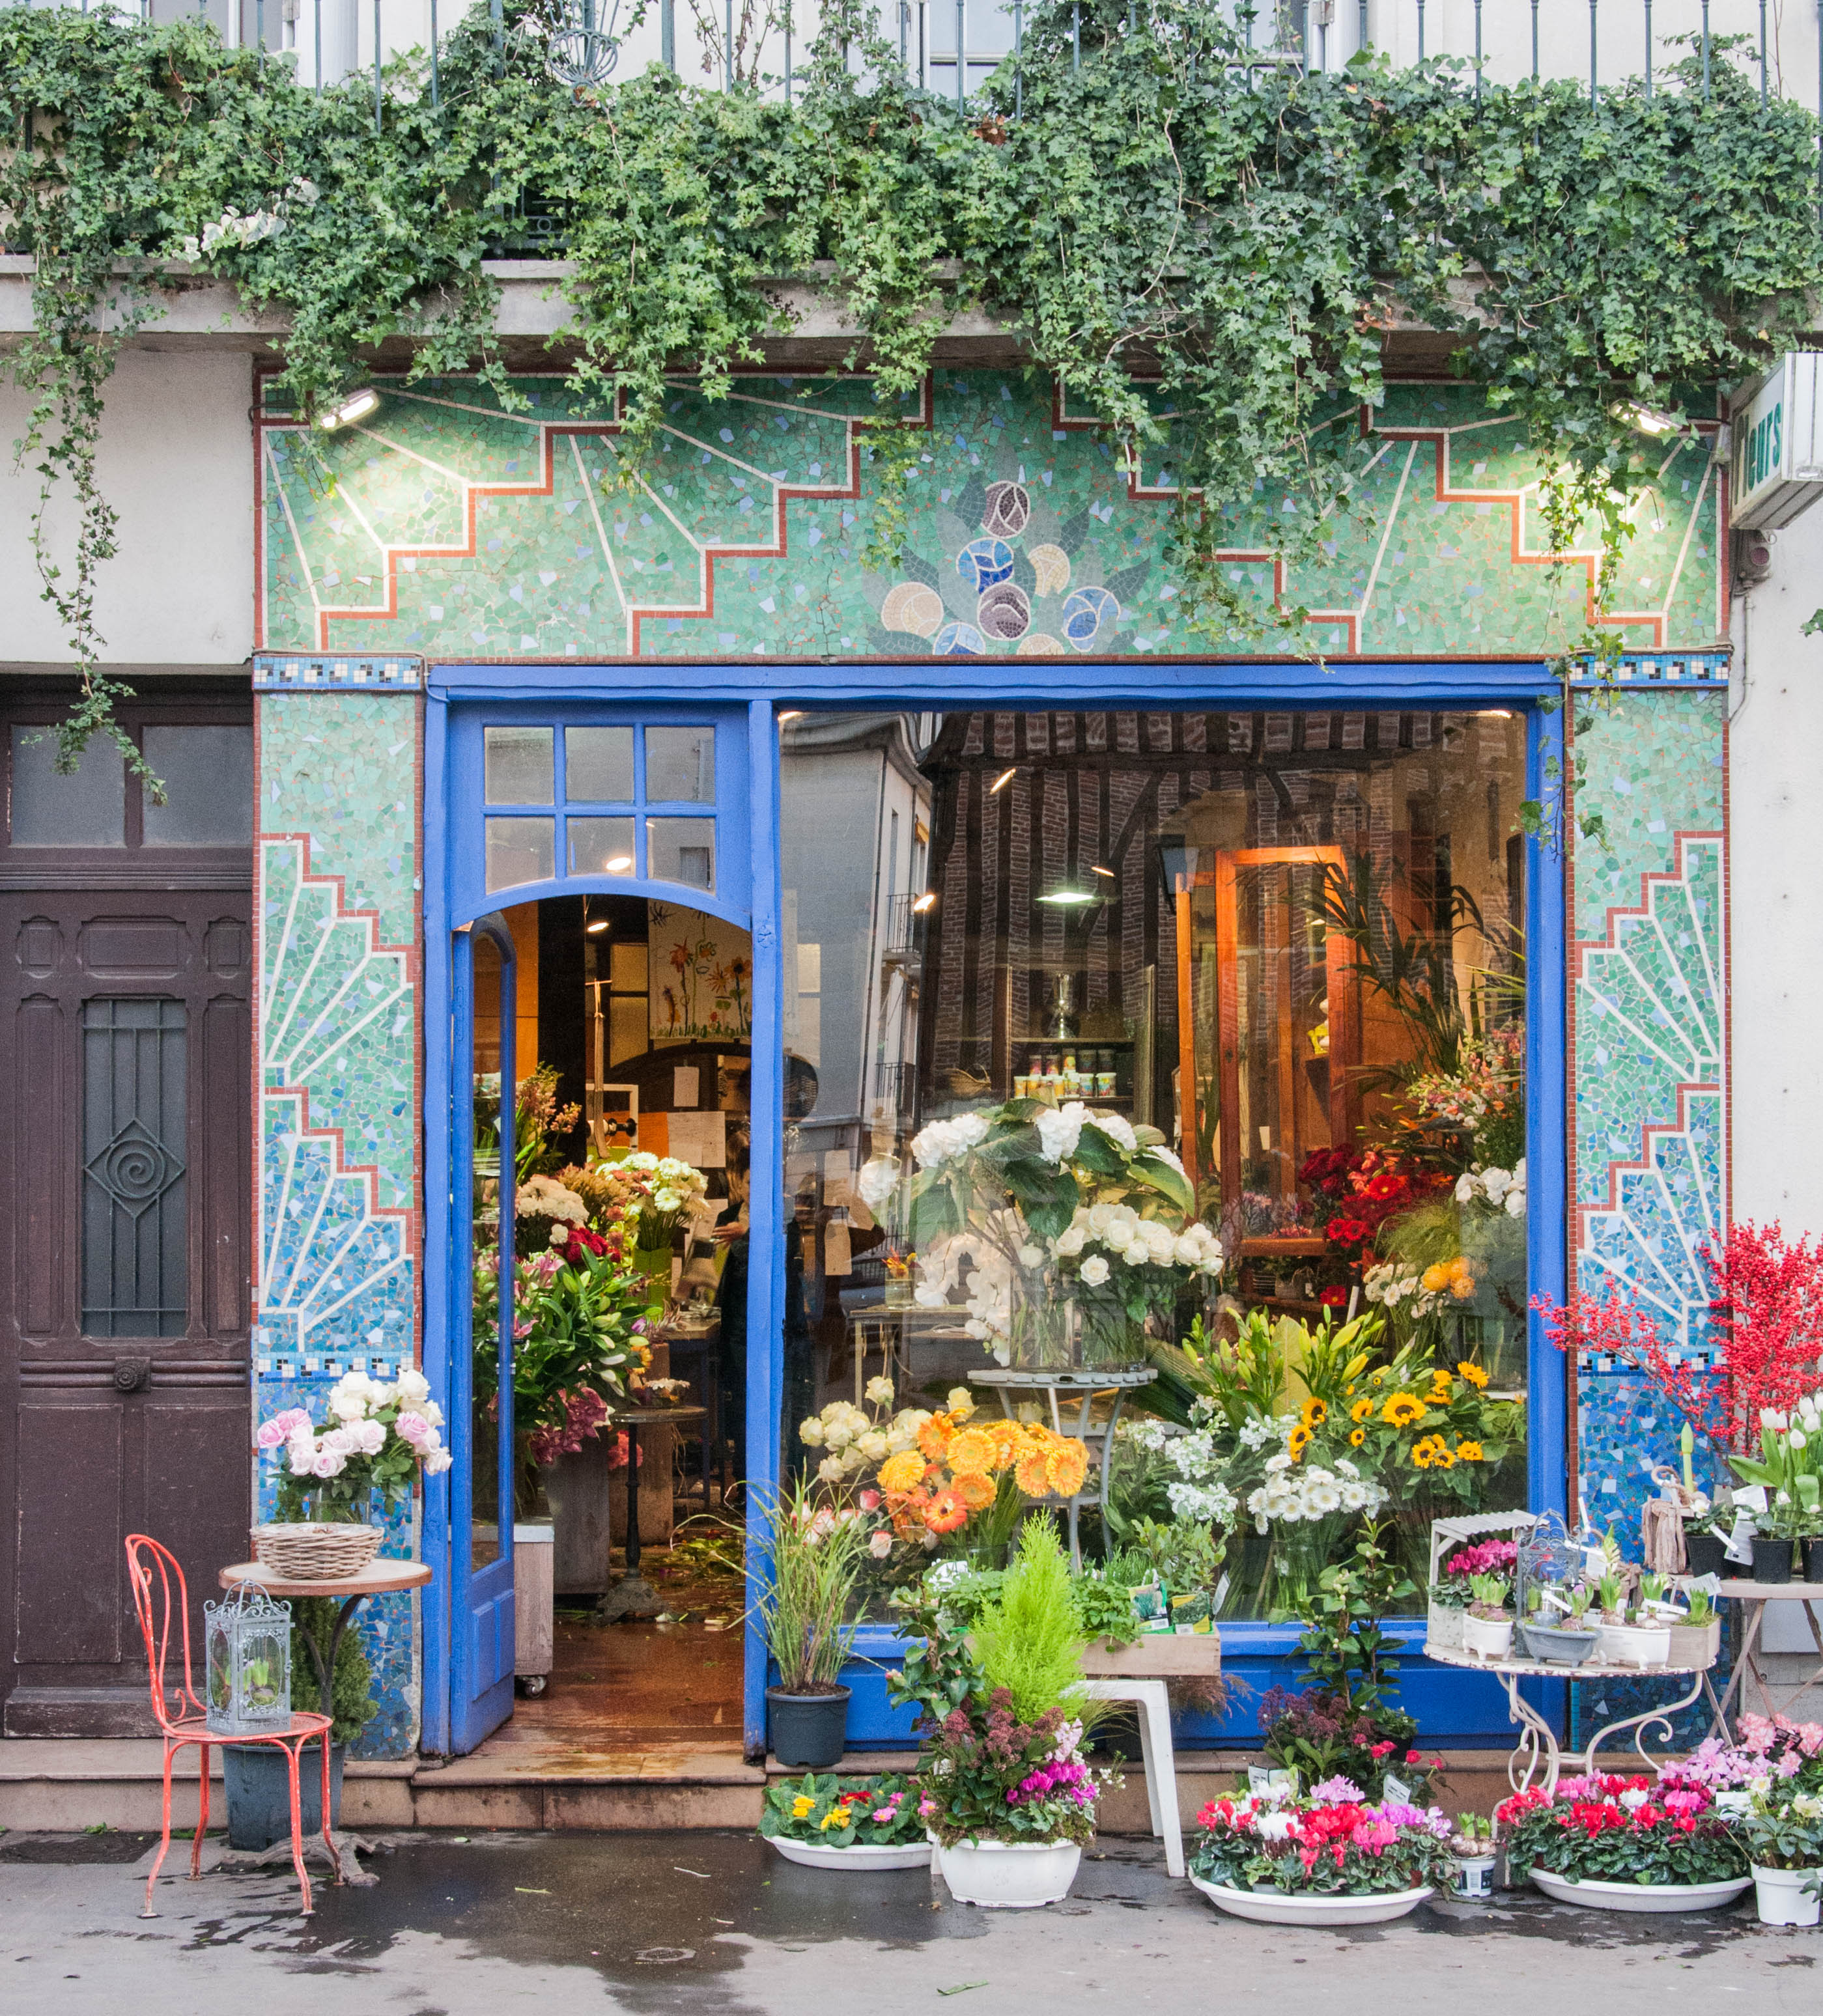 fichier fleuriste rue georges courteline tours indre et loire france jpg wikip dia. Black Bedroom Furniture Sets. Home Design Ideas